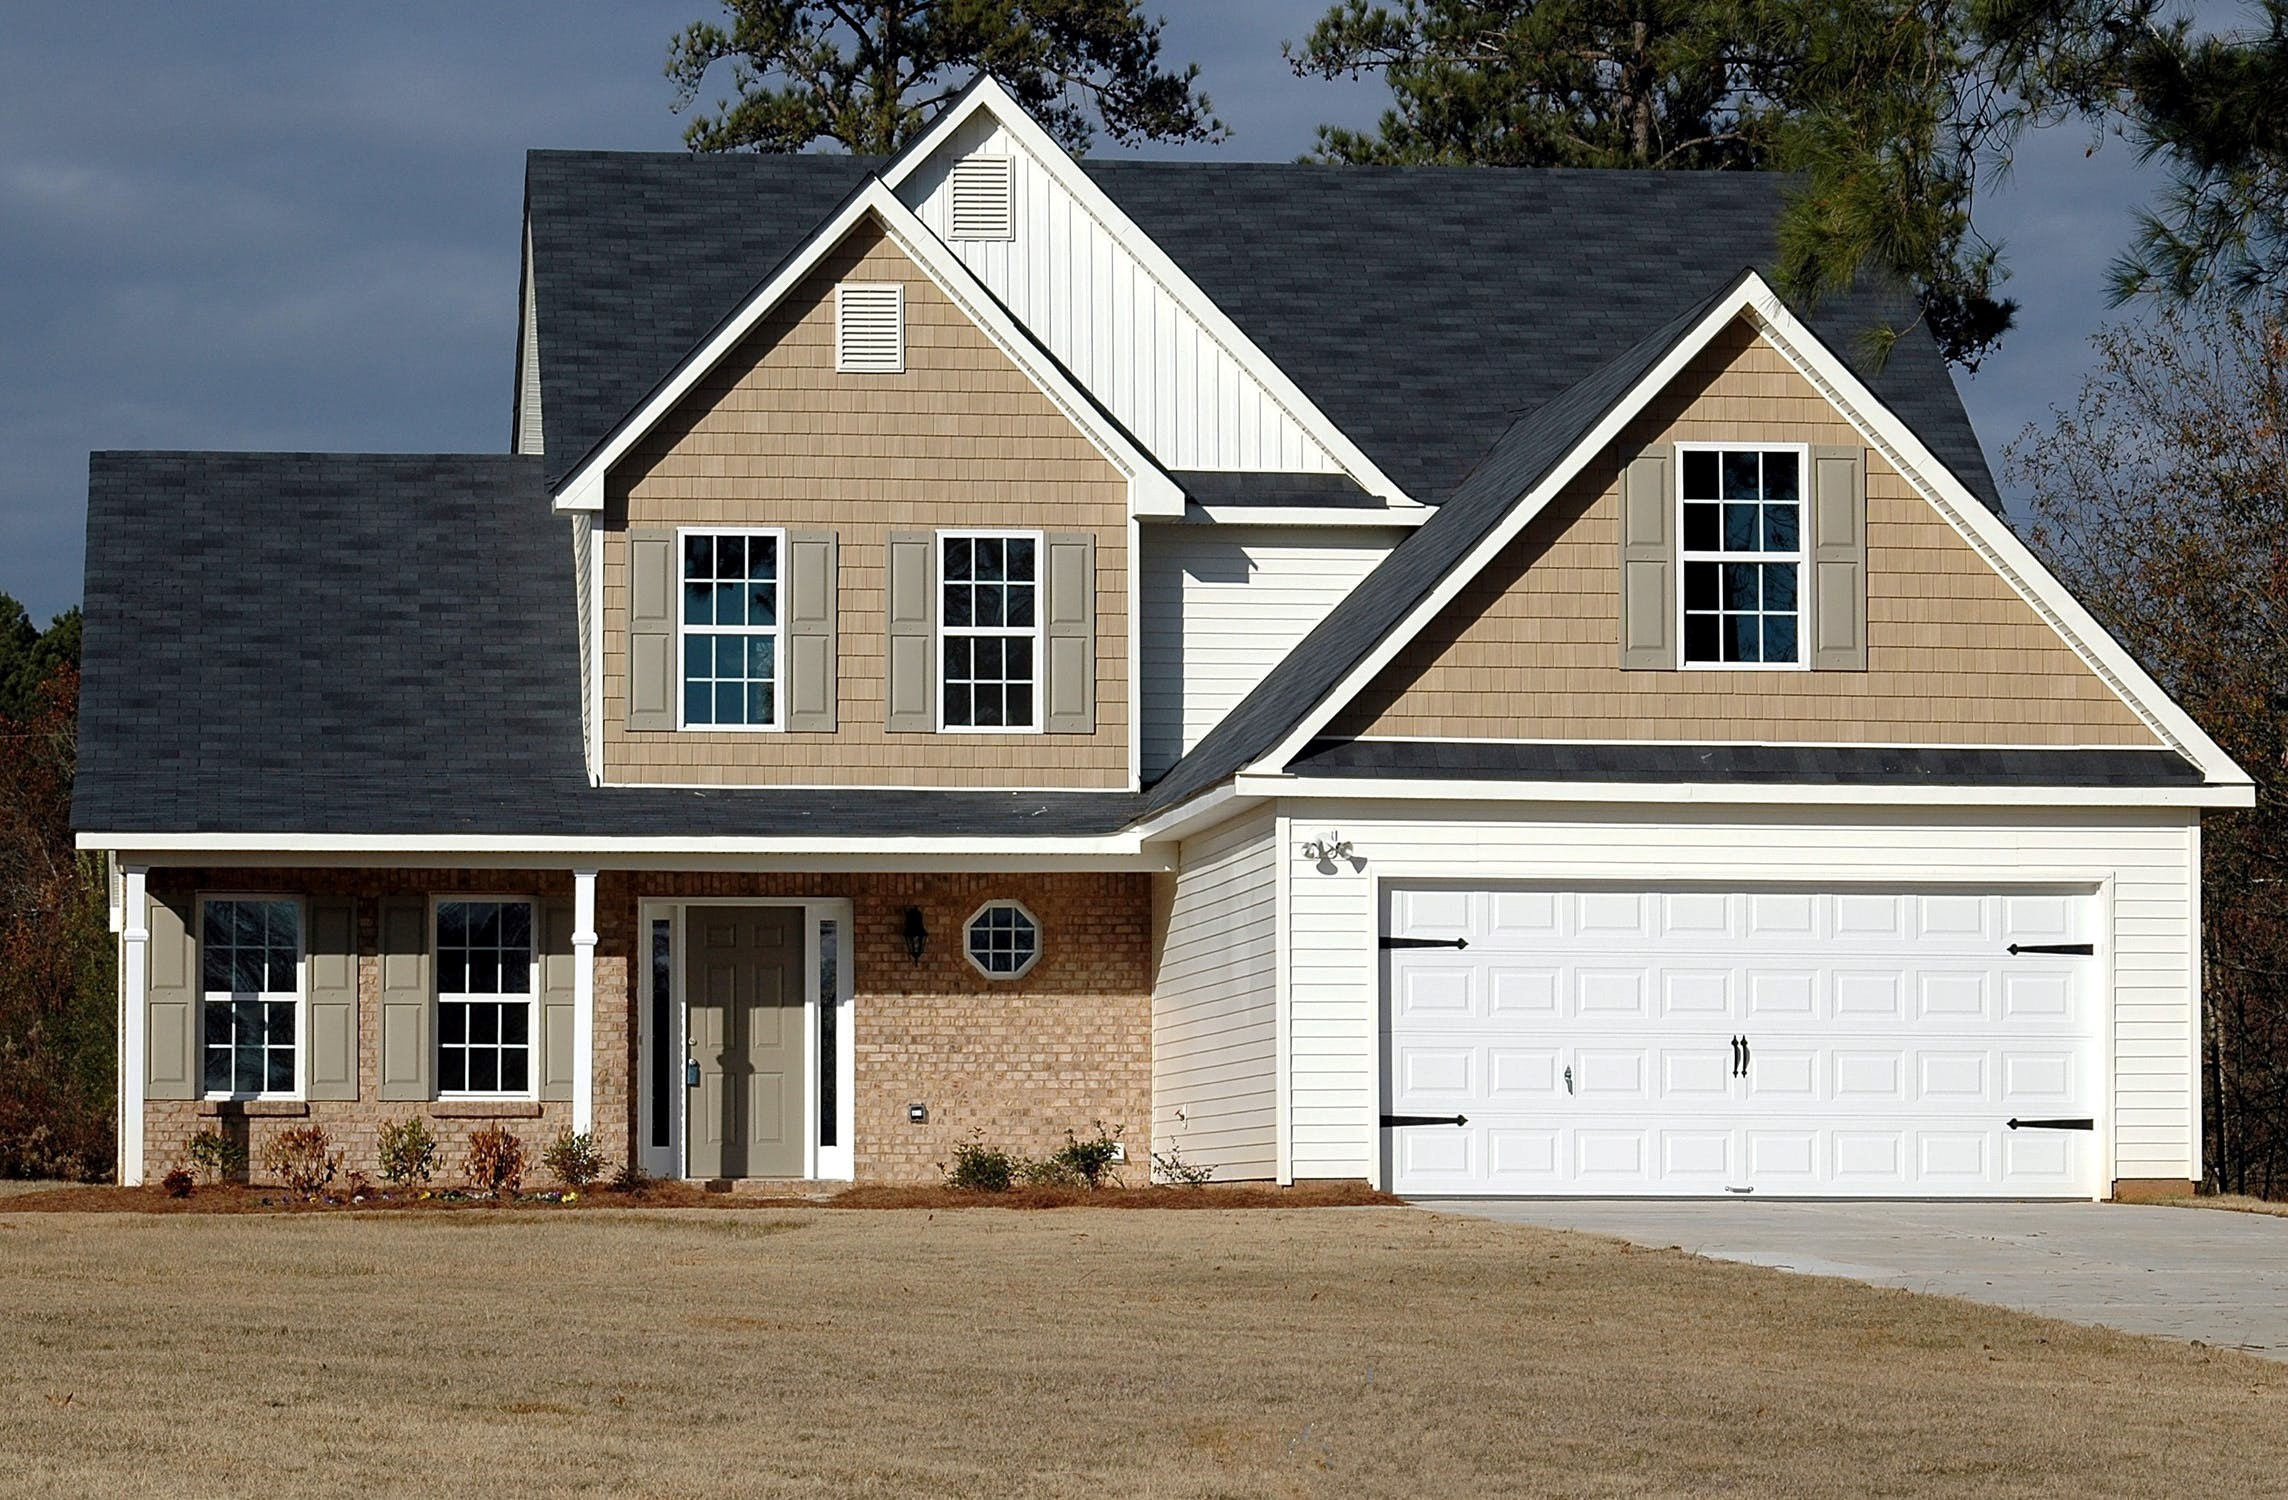 8 Preventive tips for garage door owners